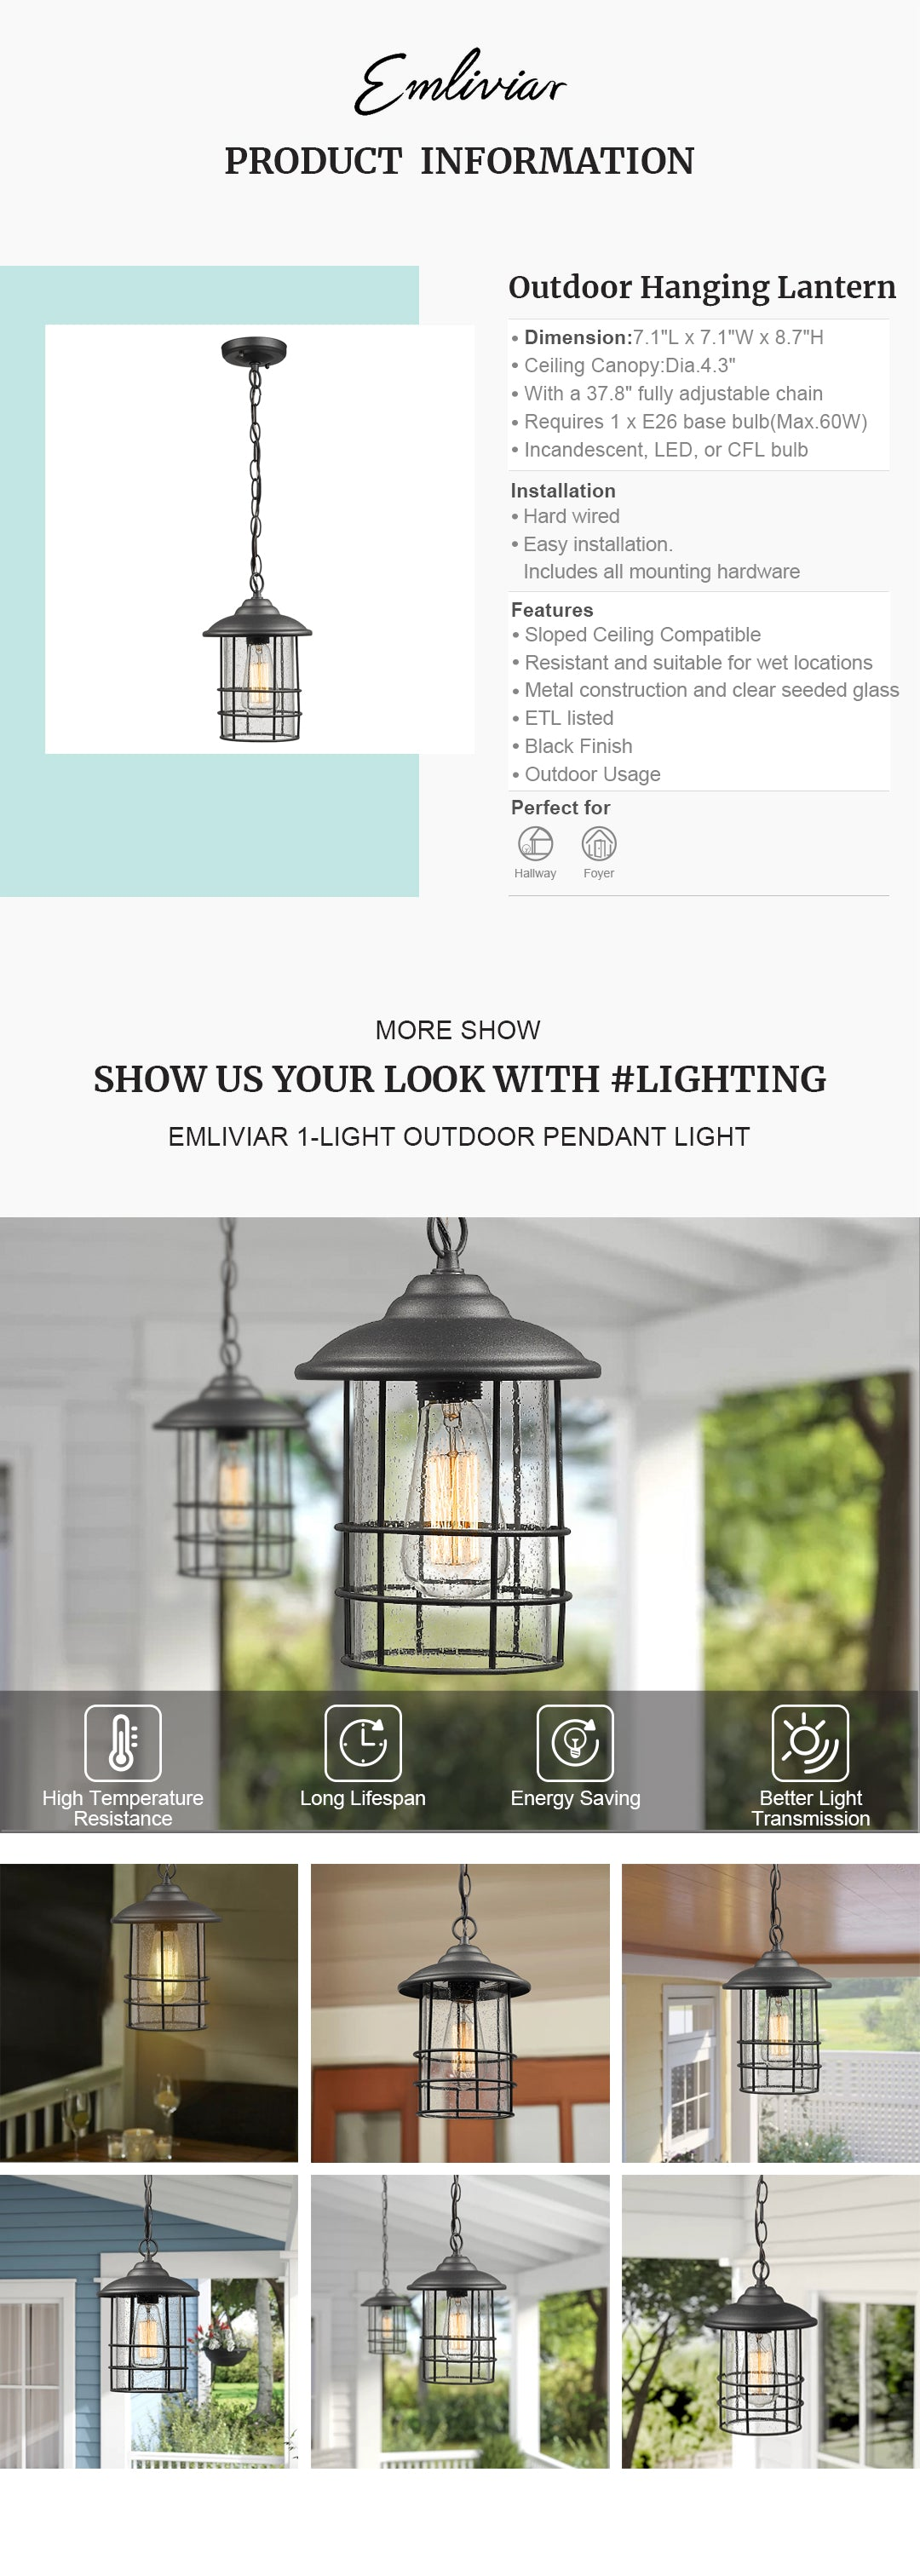 """Weather resistant and suitable for wet locations, this outdoor hanging light fixture features sturdy metal construction and clear seeded glass in black finish Easy installation with open bottom to allow for easy bulb replacement. Includes all mounting hardware. cUL listed with a one-year warranty Hard wired. Requires 1 x E26 base bulb(Max.60W). Bulb NOT included. Available bulb type: incandescent, LED, or CFL bulb This exterior pendant light fixture is sloped ceiling compatible, suit the needs of your space. Perfect for porch, patio, gazebo, foyer, garage, hallway and entryway Dimension: 7.1"""" x 7.1"""" x 8.7""""(L x W x H); Ceiling Canopy: Dia.4.3""""; With a 37.8"""" fully adjustable chain"""